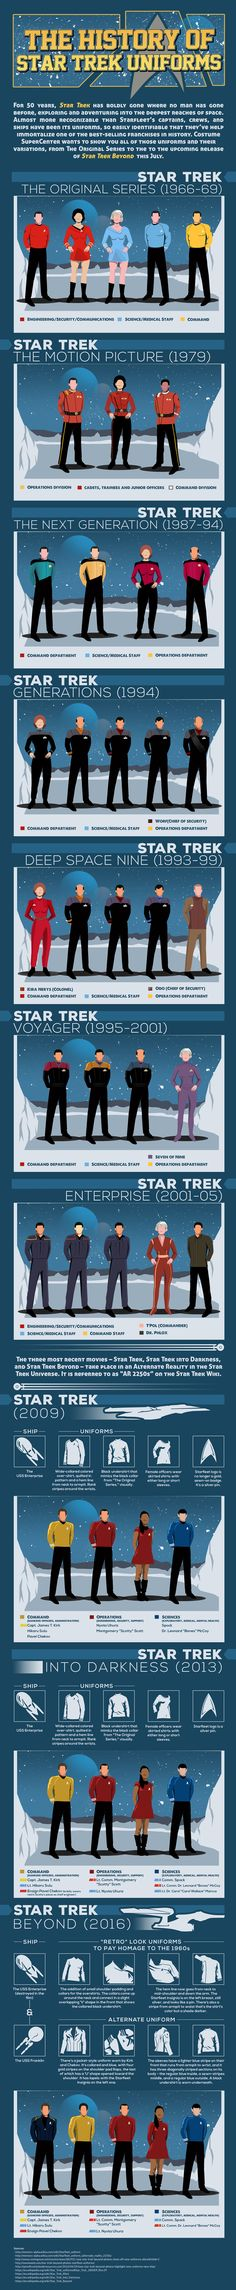 With Star Trek Beyond just over a week away from release and the 50th  anniversary of Trek upon us, 2016 is undoubtedly a huge year for Trek fans  (do you prefer the term Trekkies or Trekkers these days? It's hard to keep  up). Earlier today, I wrote about some cool artwork that celebrates the  franchise, and now the team at Costume SuperCenter has put together an  infographic that tracks the history of uniforms through most of the  incarnations of Star Trek over the years, from the…